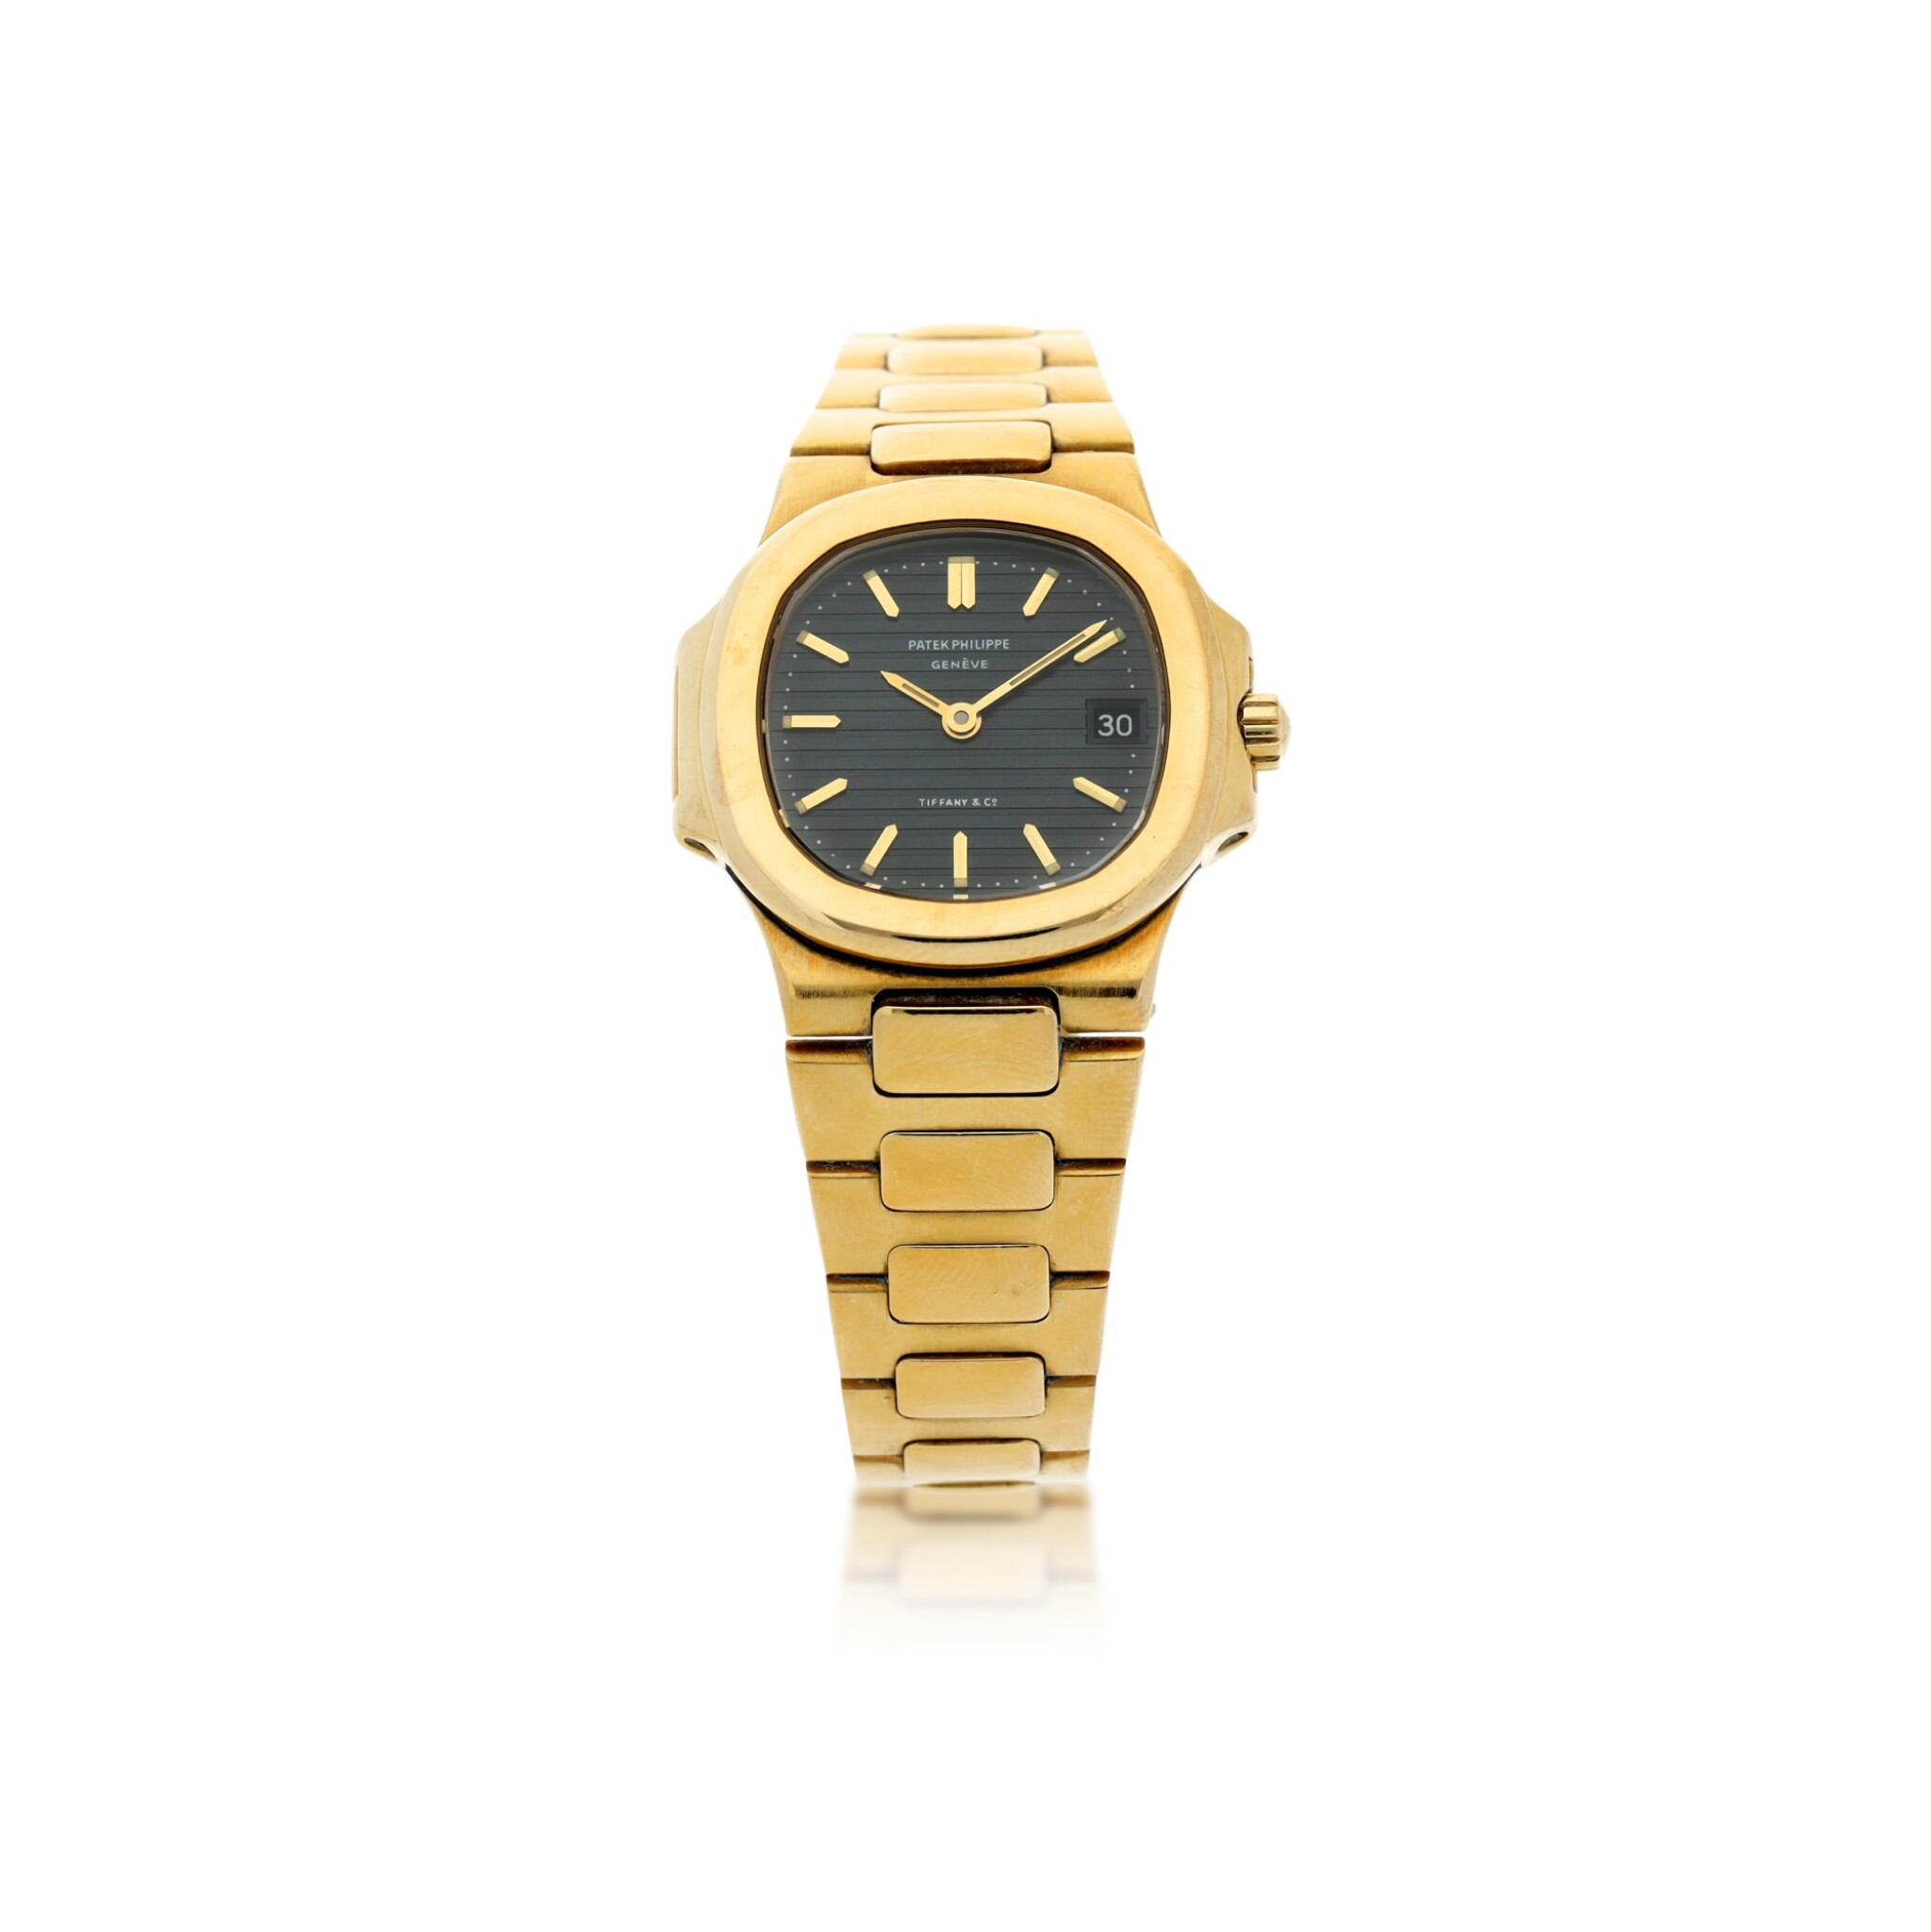 View full screen - View 1 of Lot 34. REFERENCE 4700/1 NAUTILUS RETAILED BY TIFFANY & CO.: A LADY'S YELLOW GOLD BRACELET WATCH WITH DATE, CIRCA 1985.